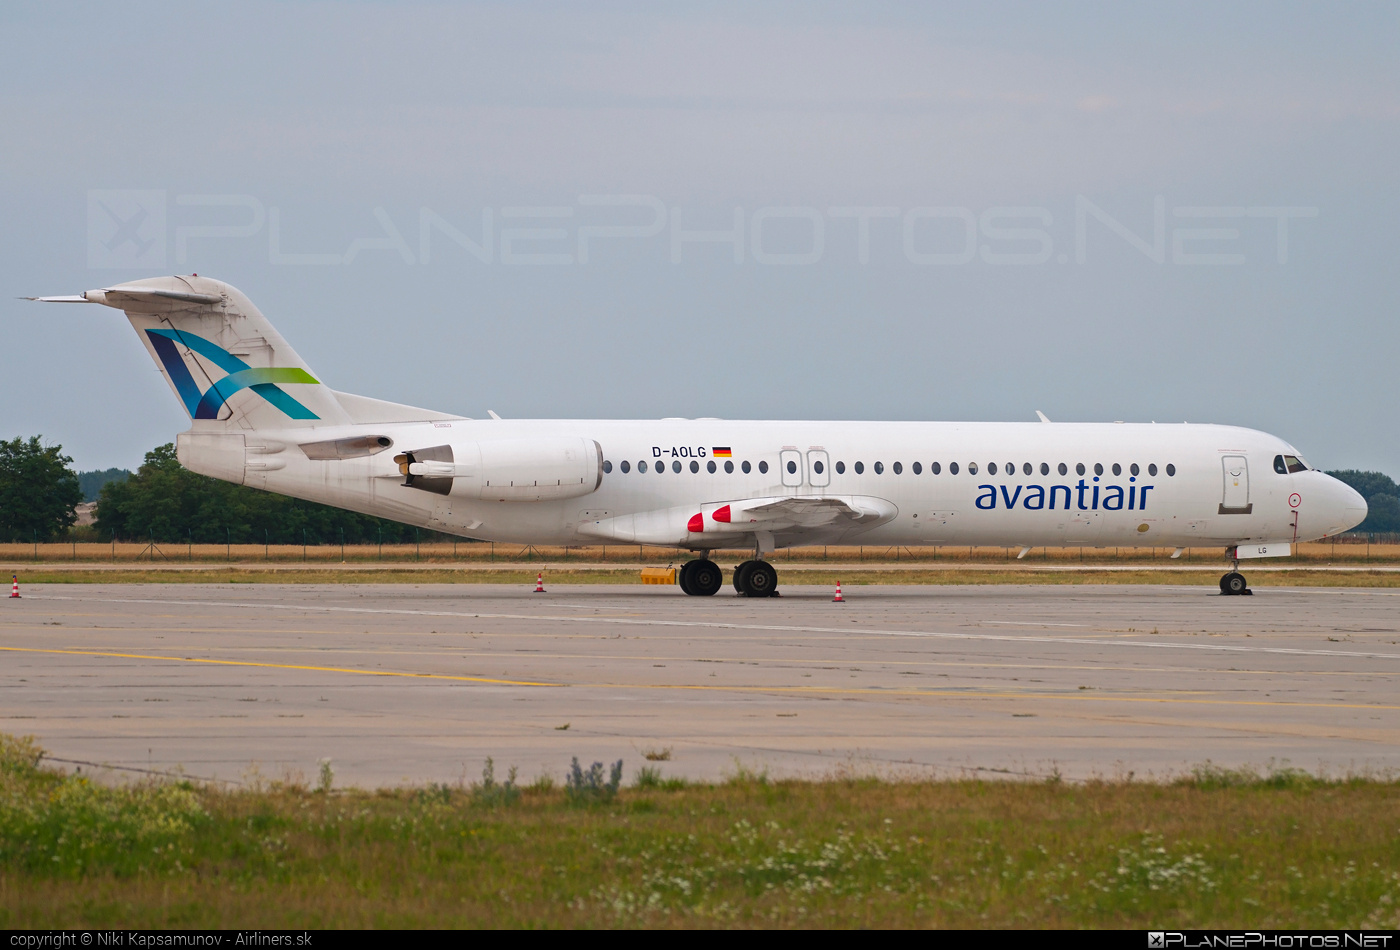 Fokker 100 - D-AOLG operated by avantiair #fokker